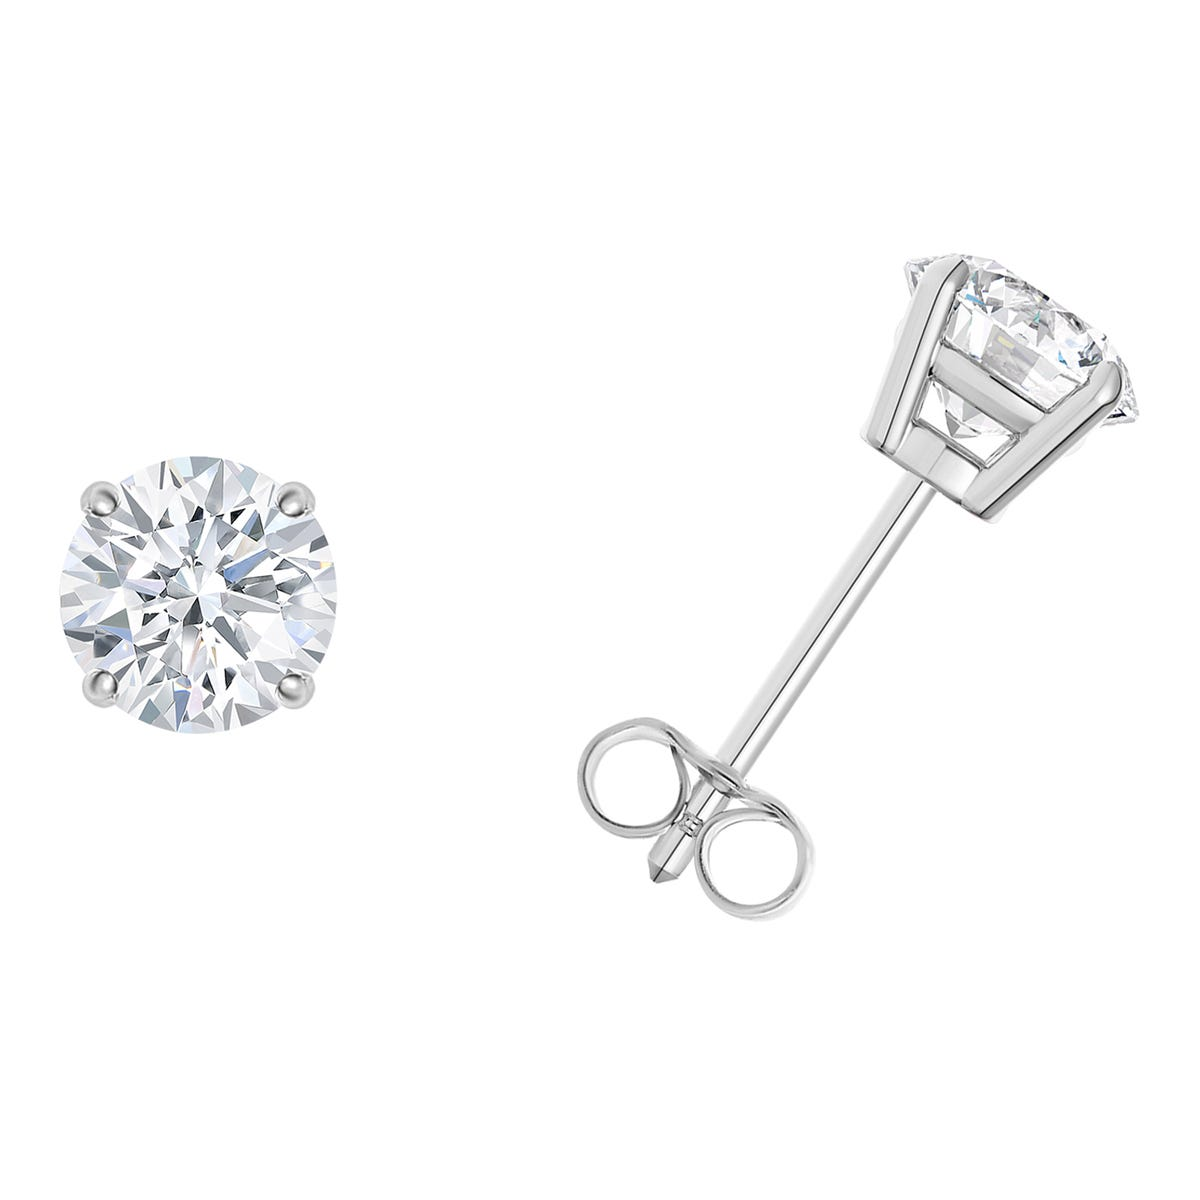 1/5 CTTW Round Diamond Solitaire Stud 4-prong Earrings in 10K White Gold (I-I2) IGI Certified